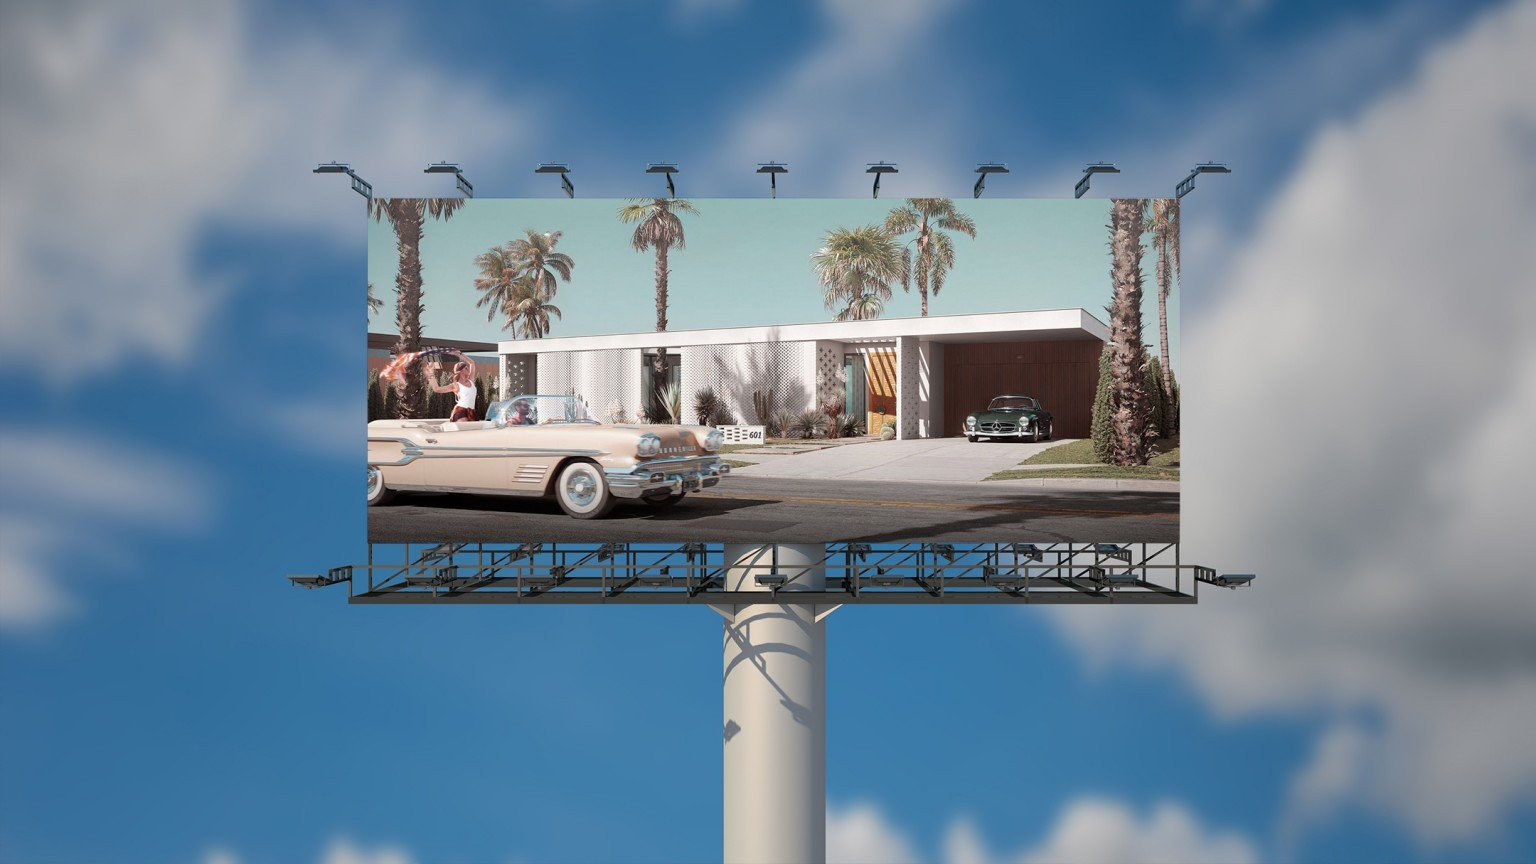 A Billboard with a CG Image of a Property for Pre-Sale